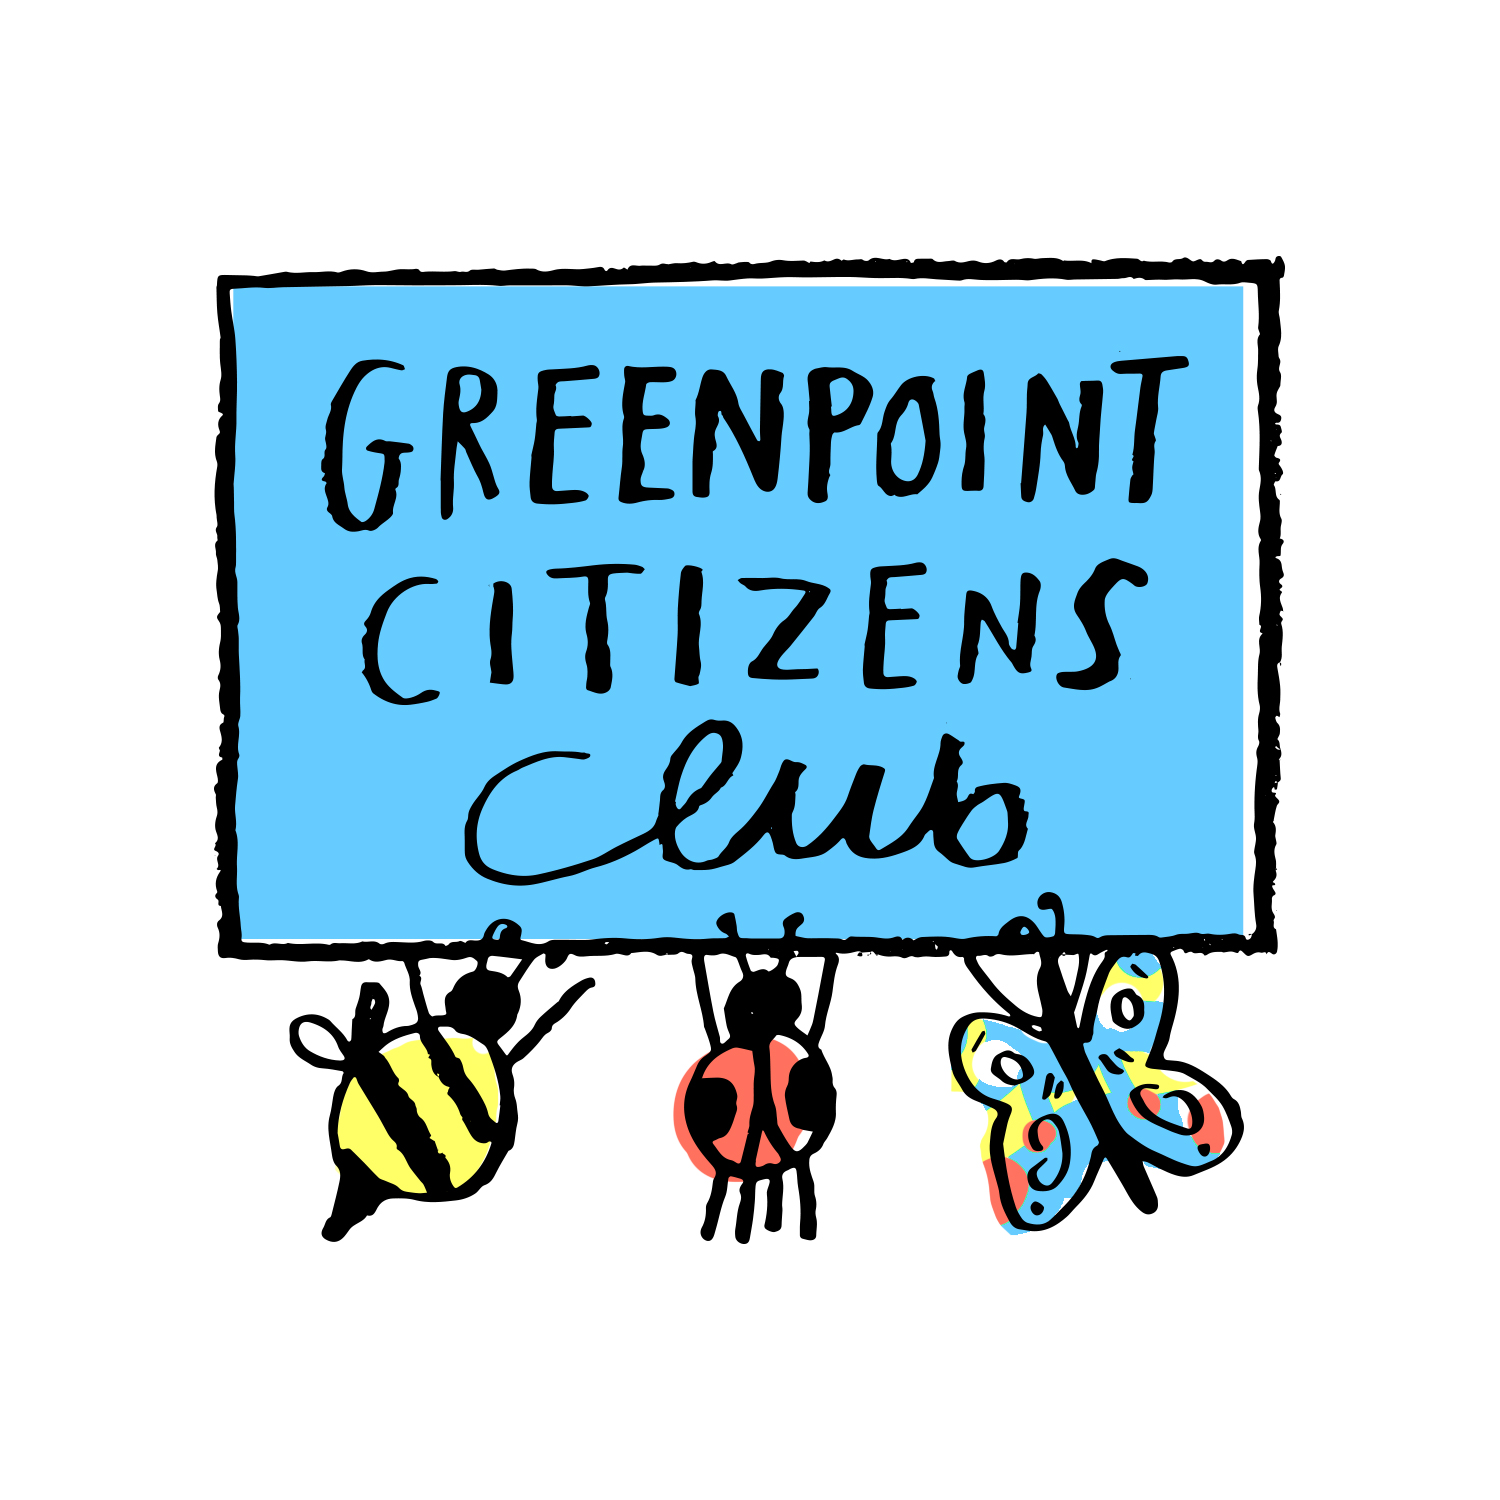 GreenpointCitizensClubweb.jpg